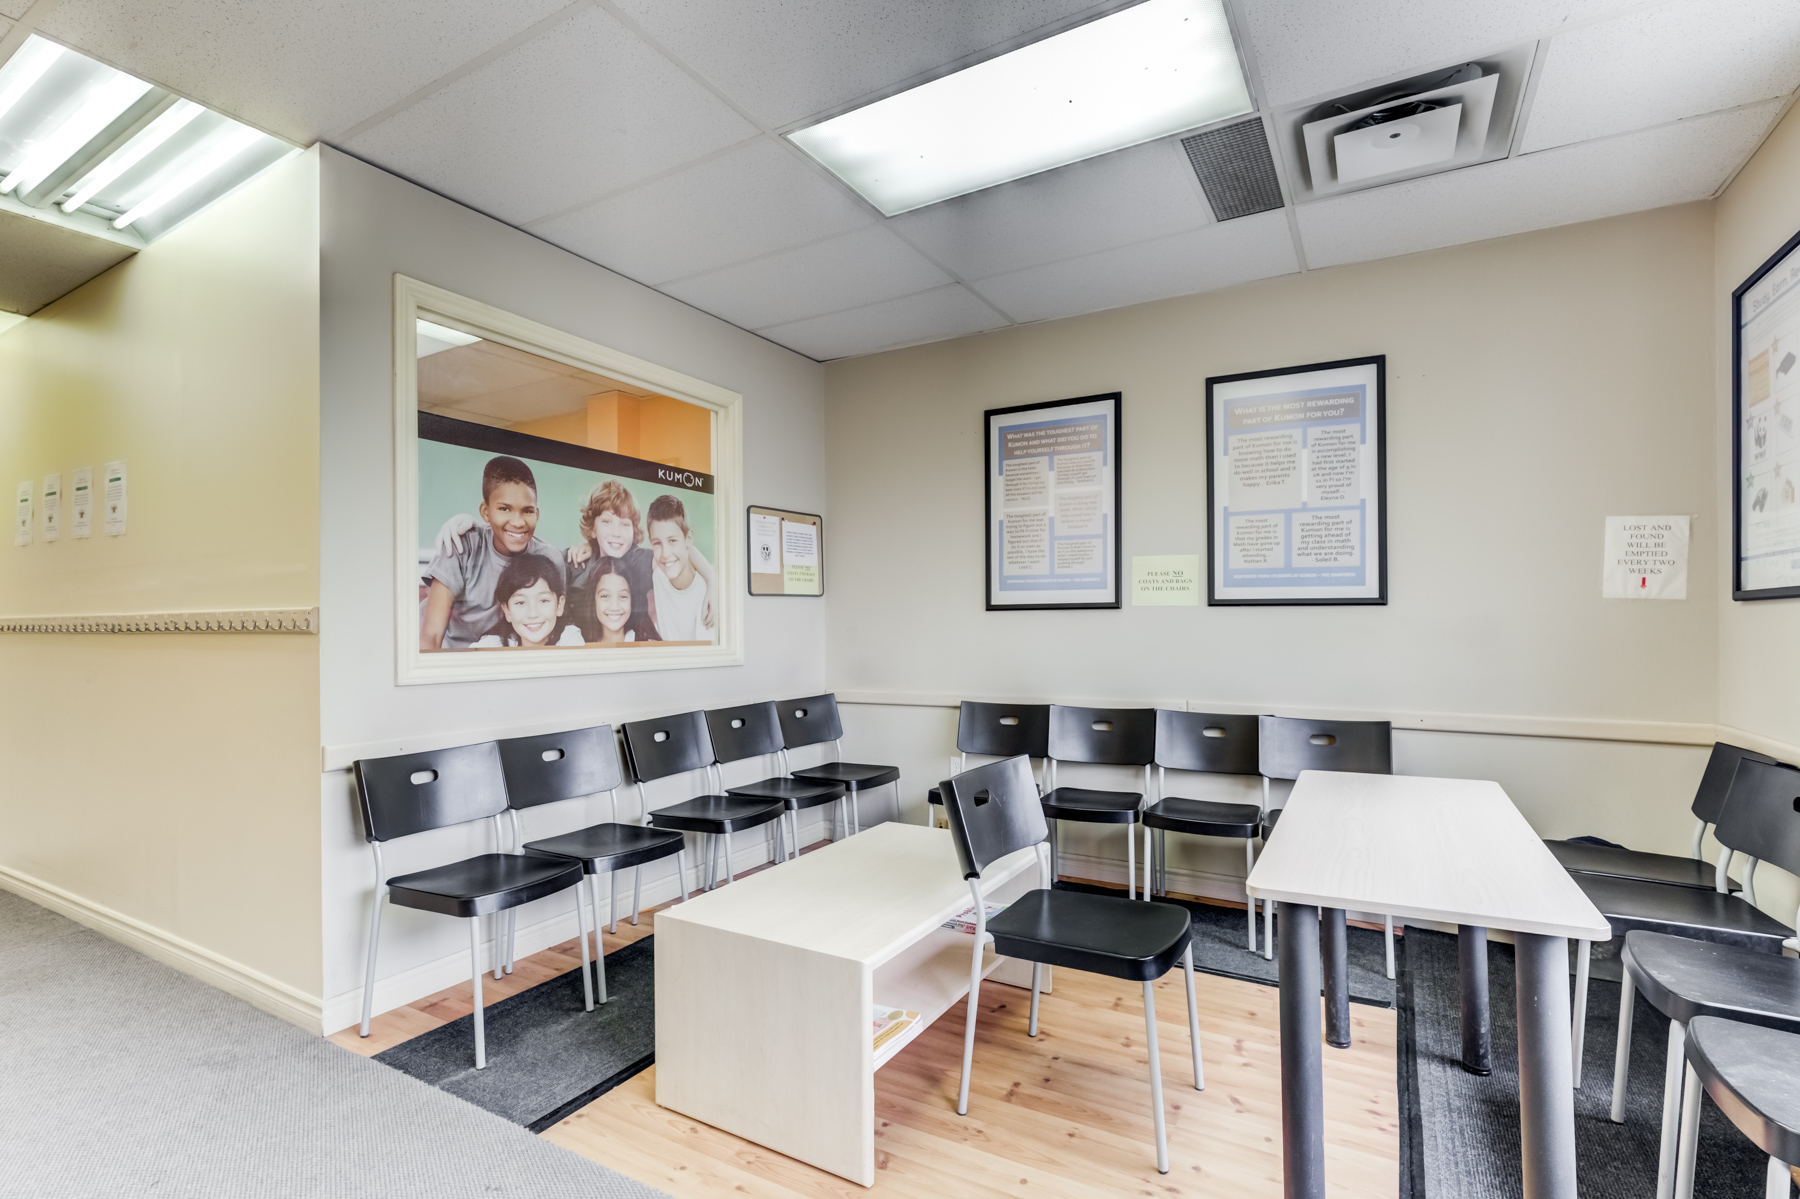 Kumon waiting area with chairs and tables.